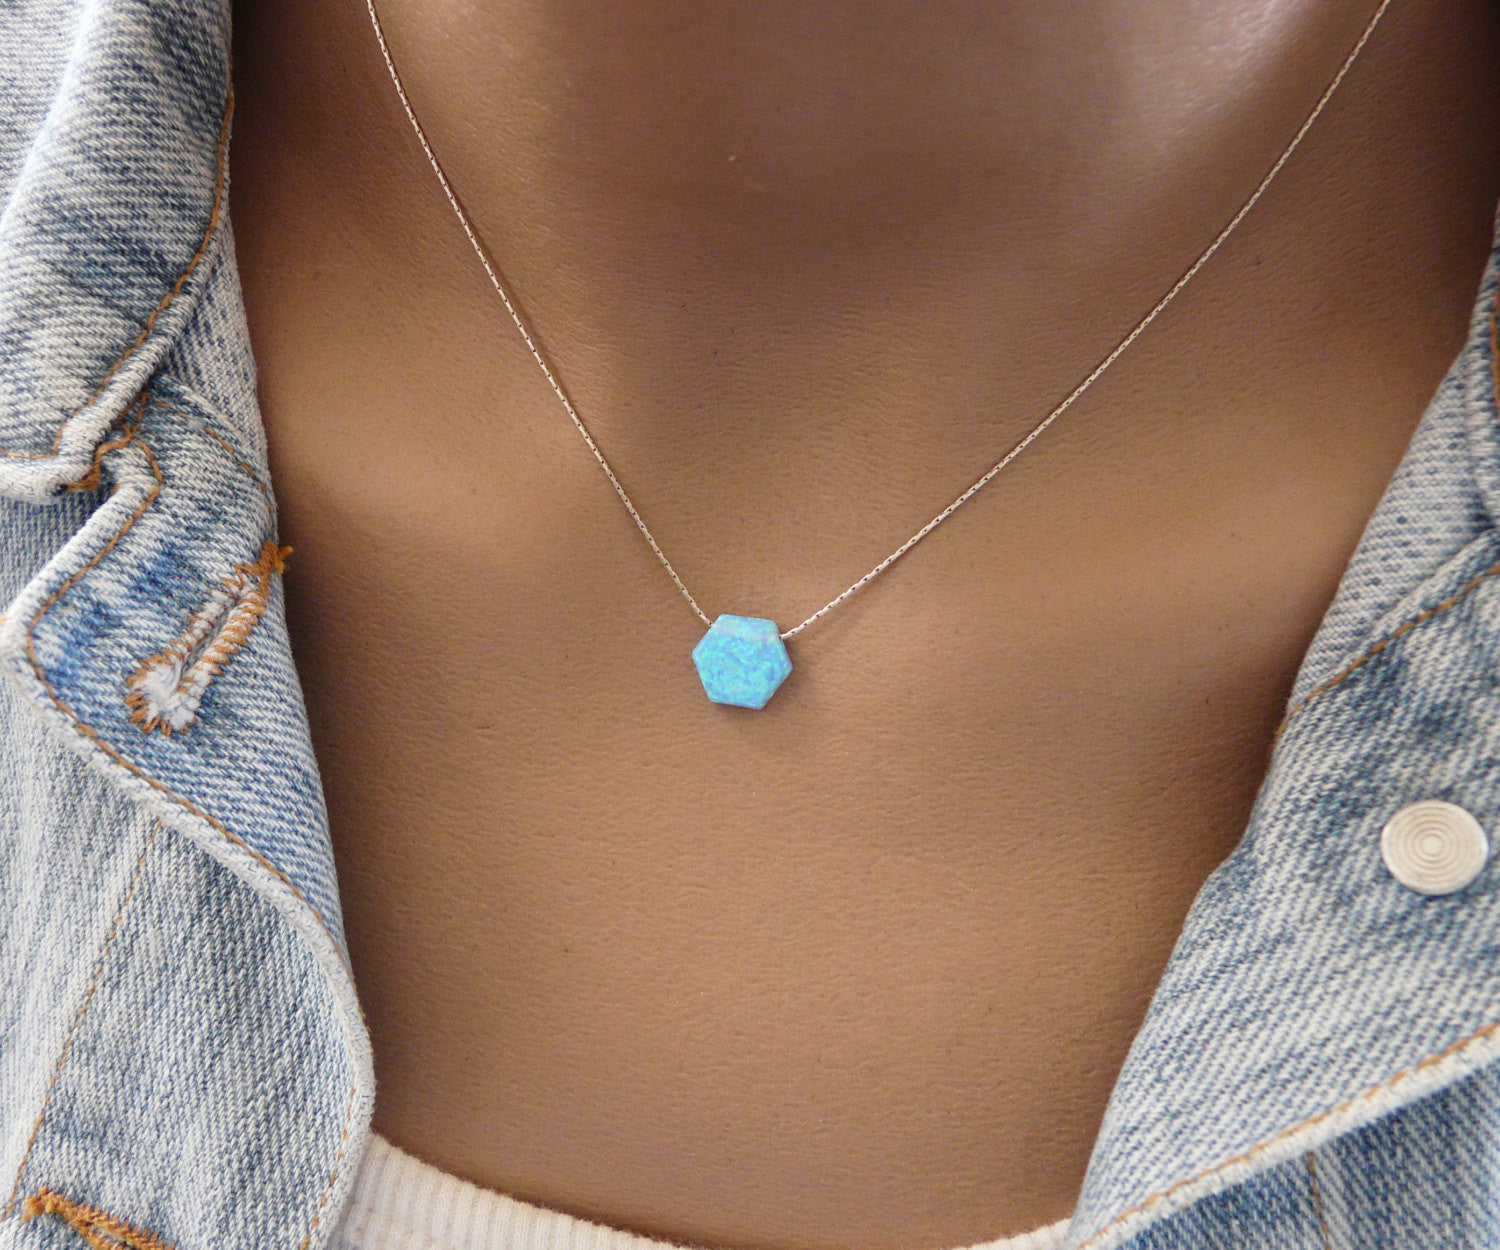 Hexagon Opal necklace - OpaLandJewelry